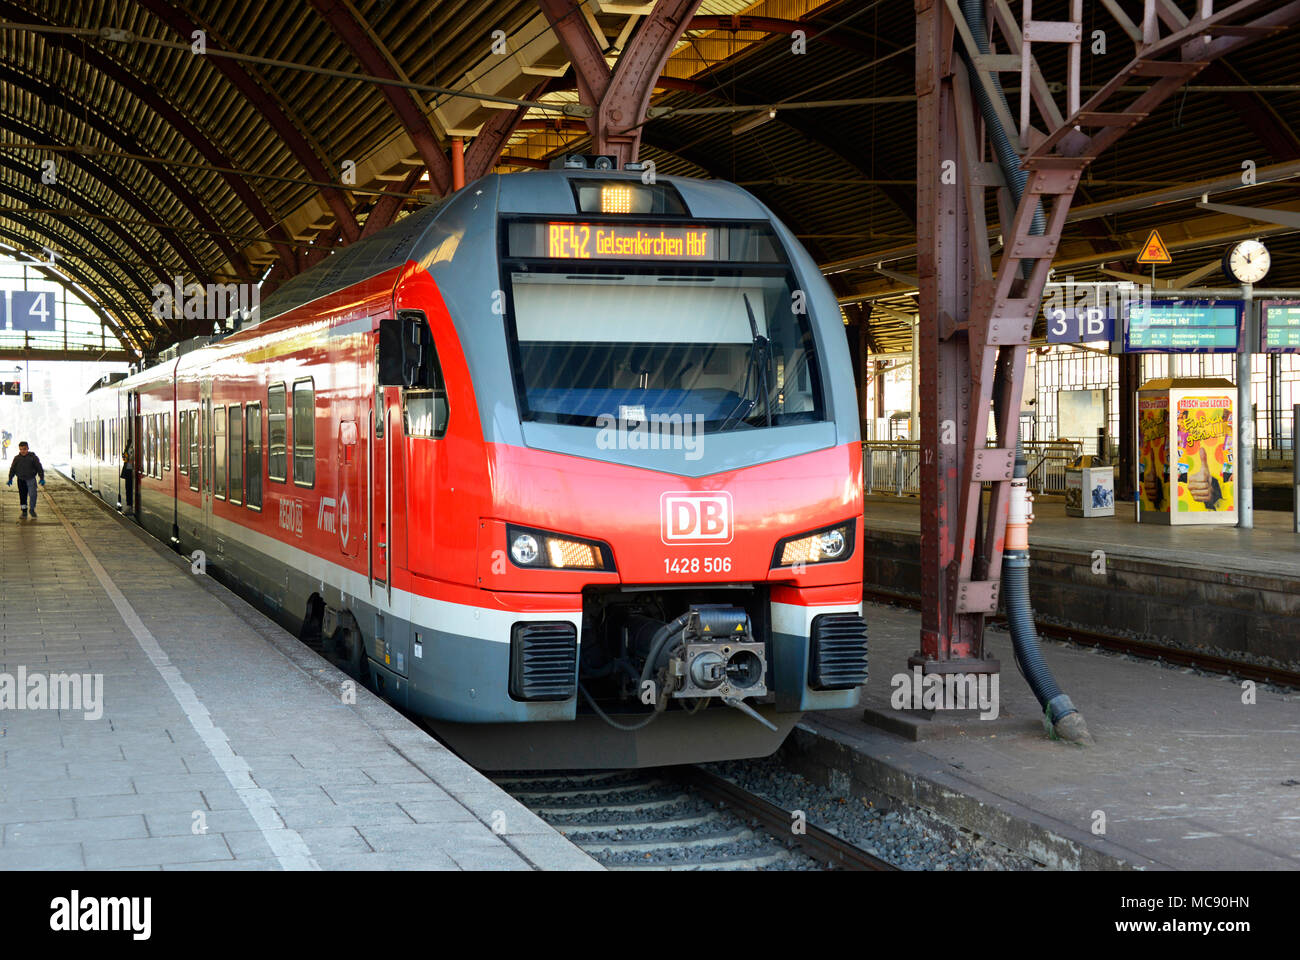 A DB EMU service waits to depart from Monchengladbach station in Germany - Stock Image